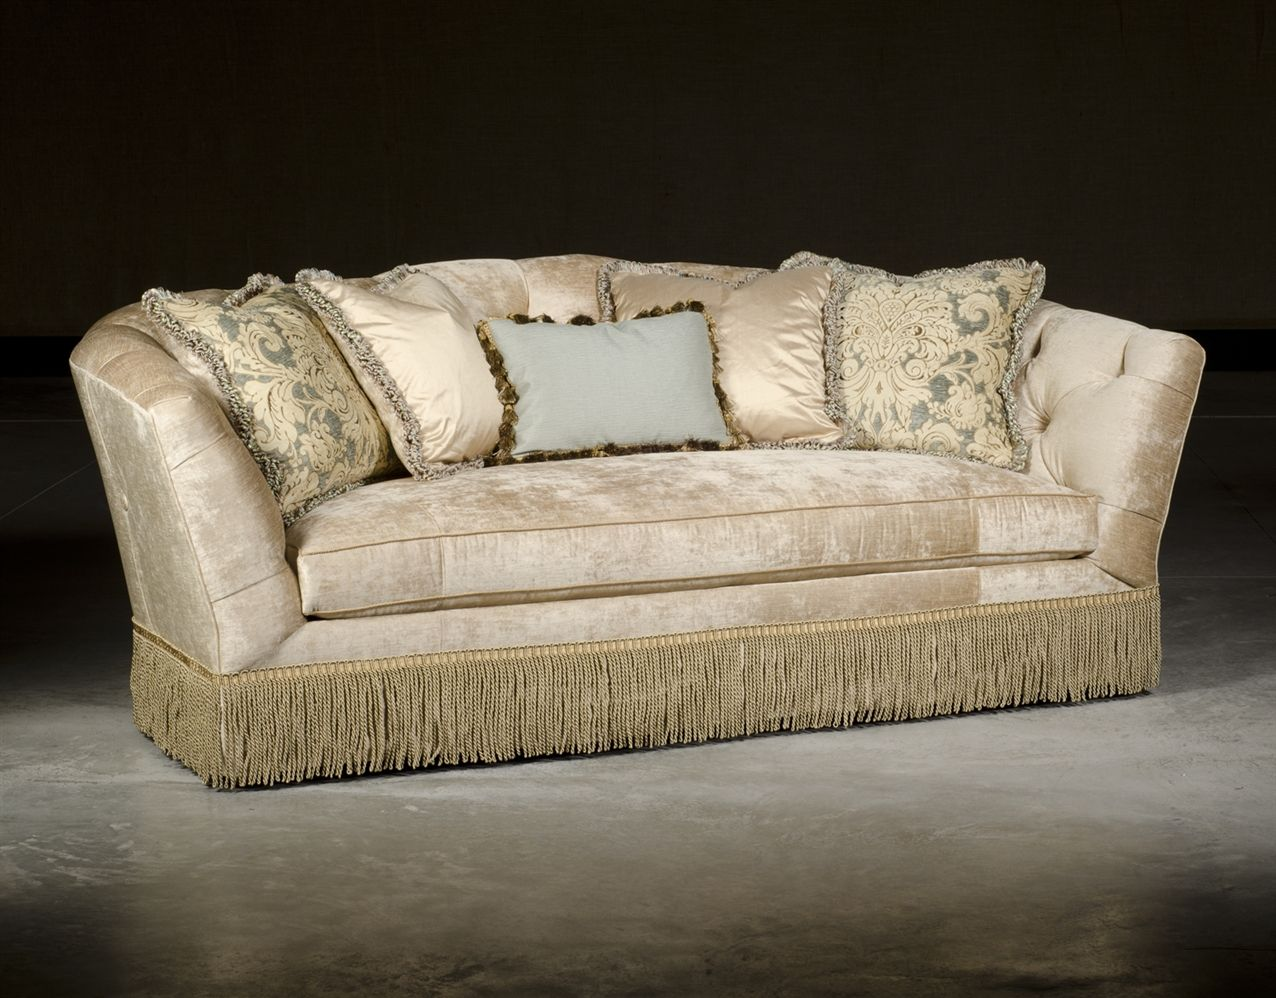 Etonnant Luxury Sofa. Visit